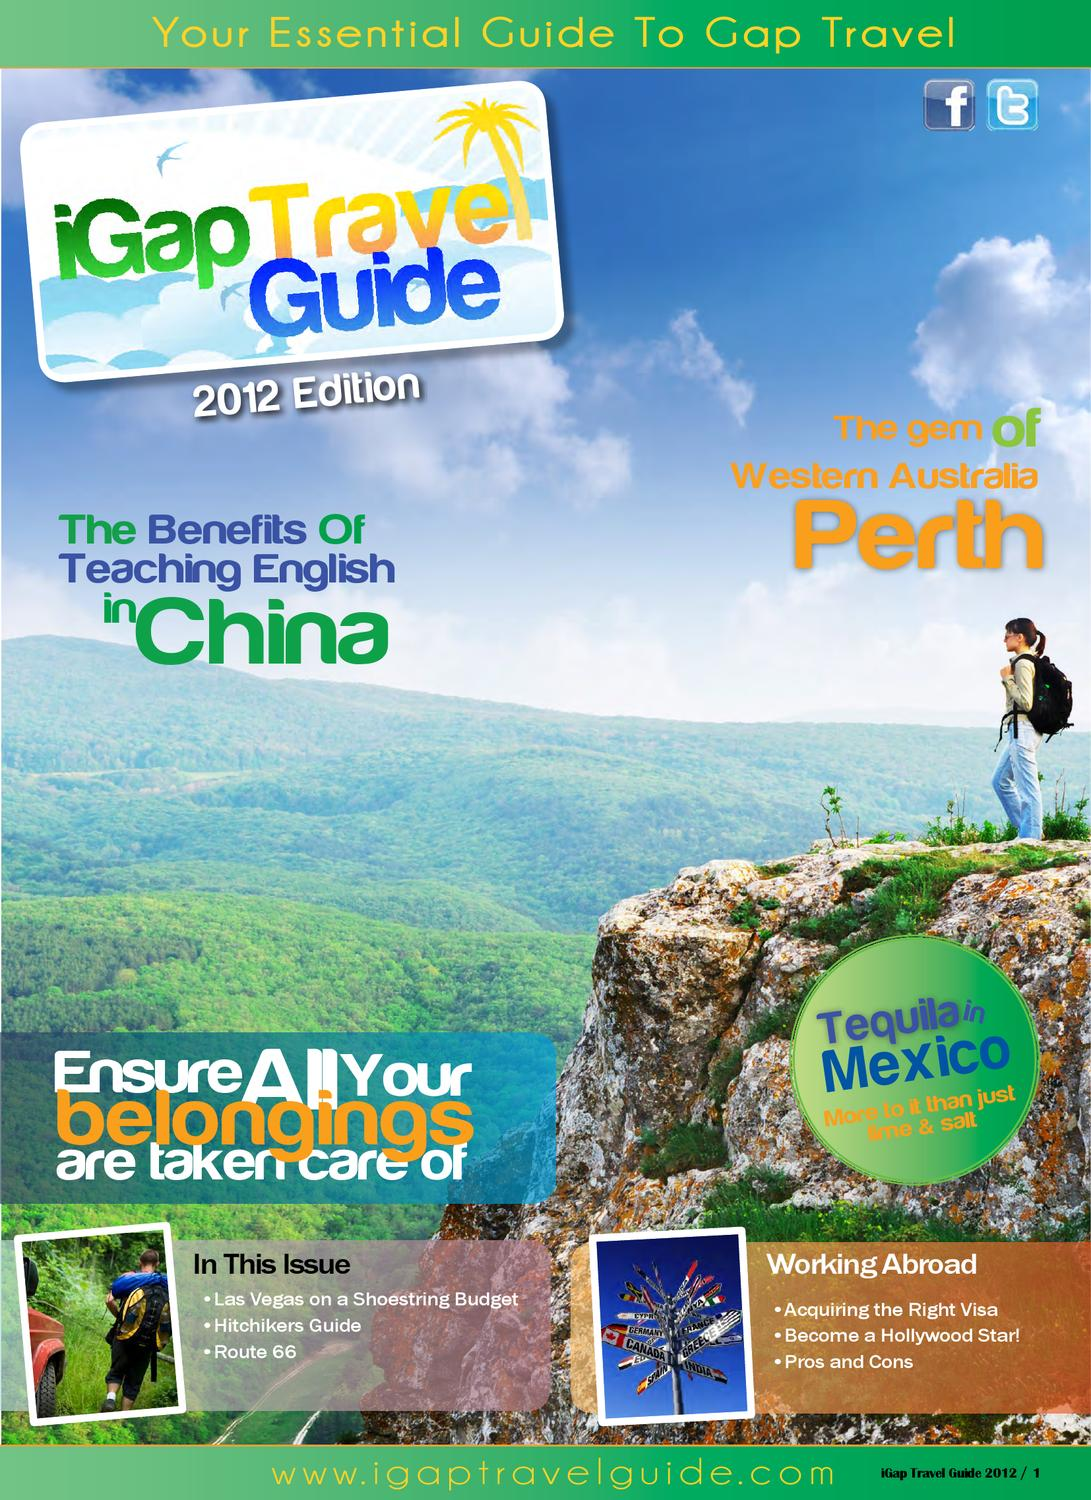 iGap Travel Guide 2012 by Corporate LiveWire - issuu